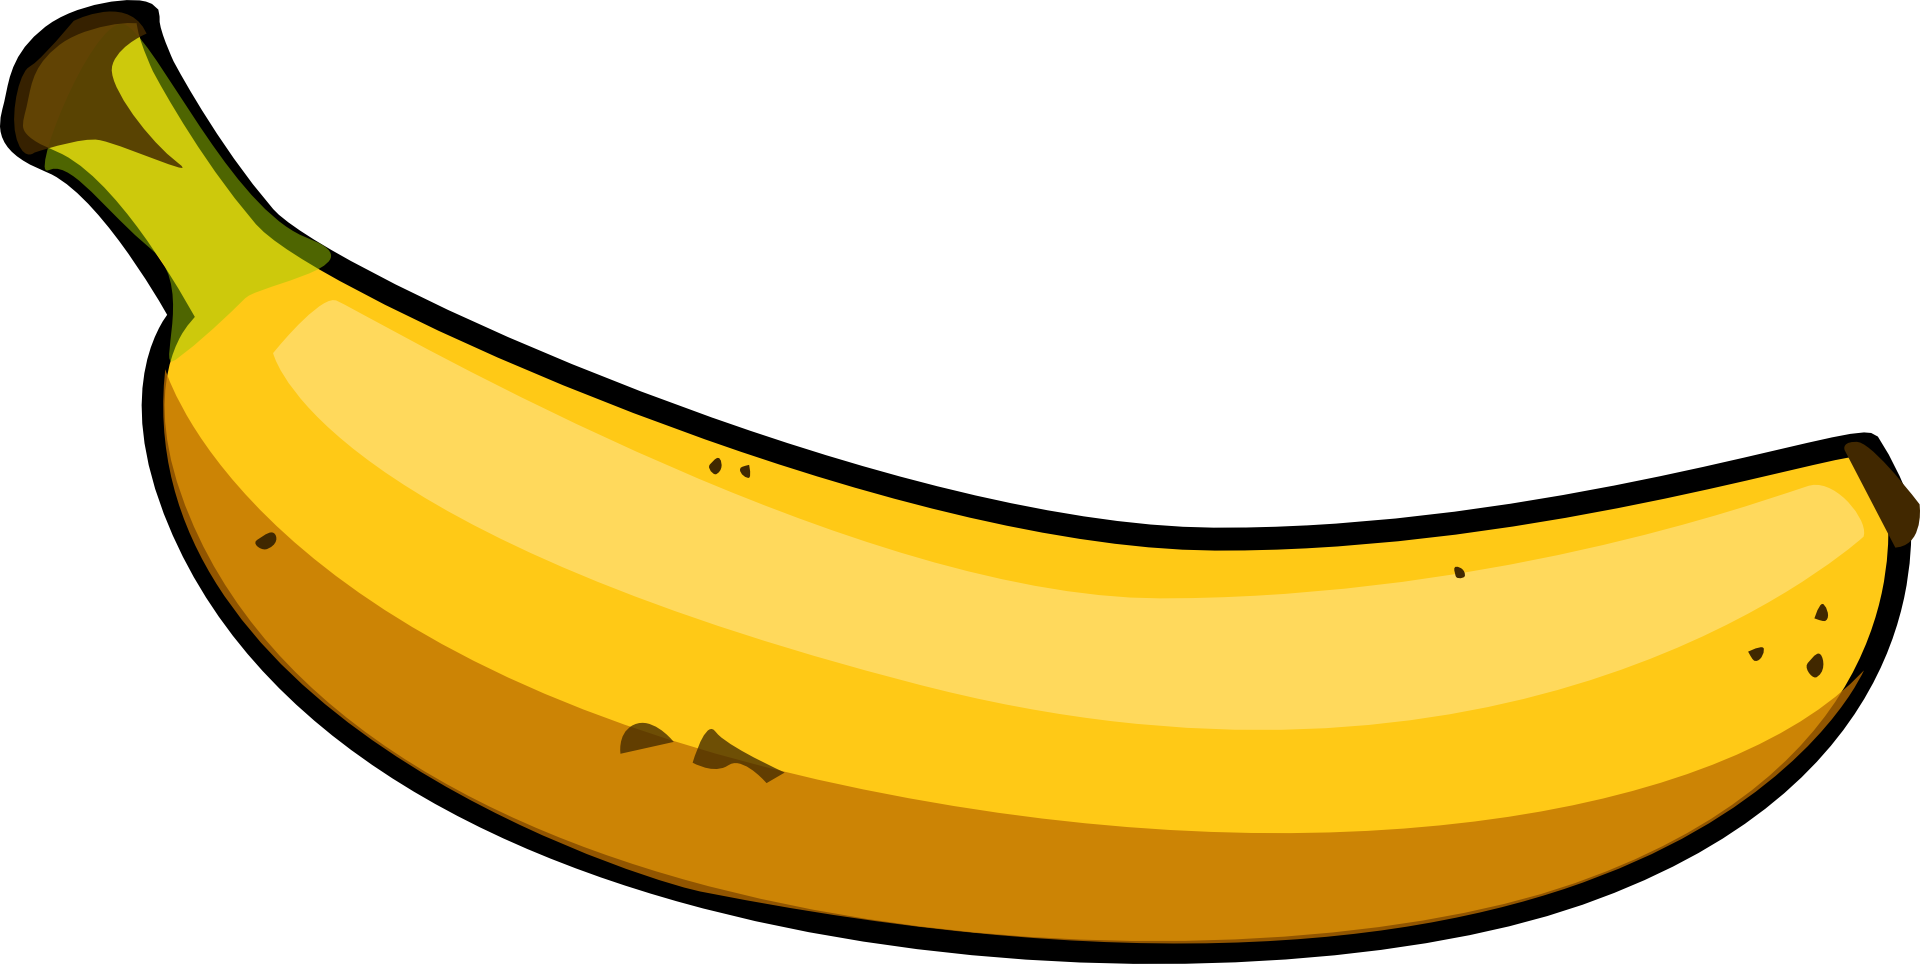 Png images free download. Banana clipart transparent background